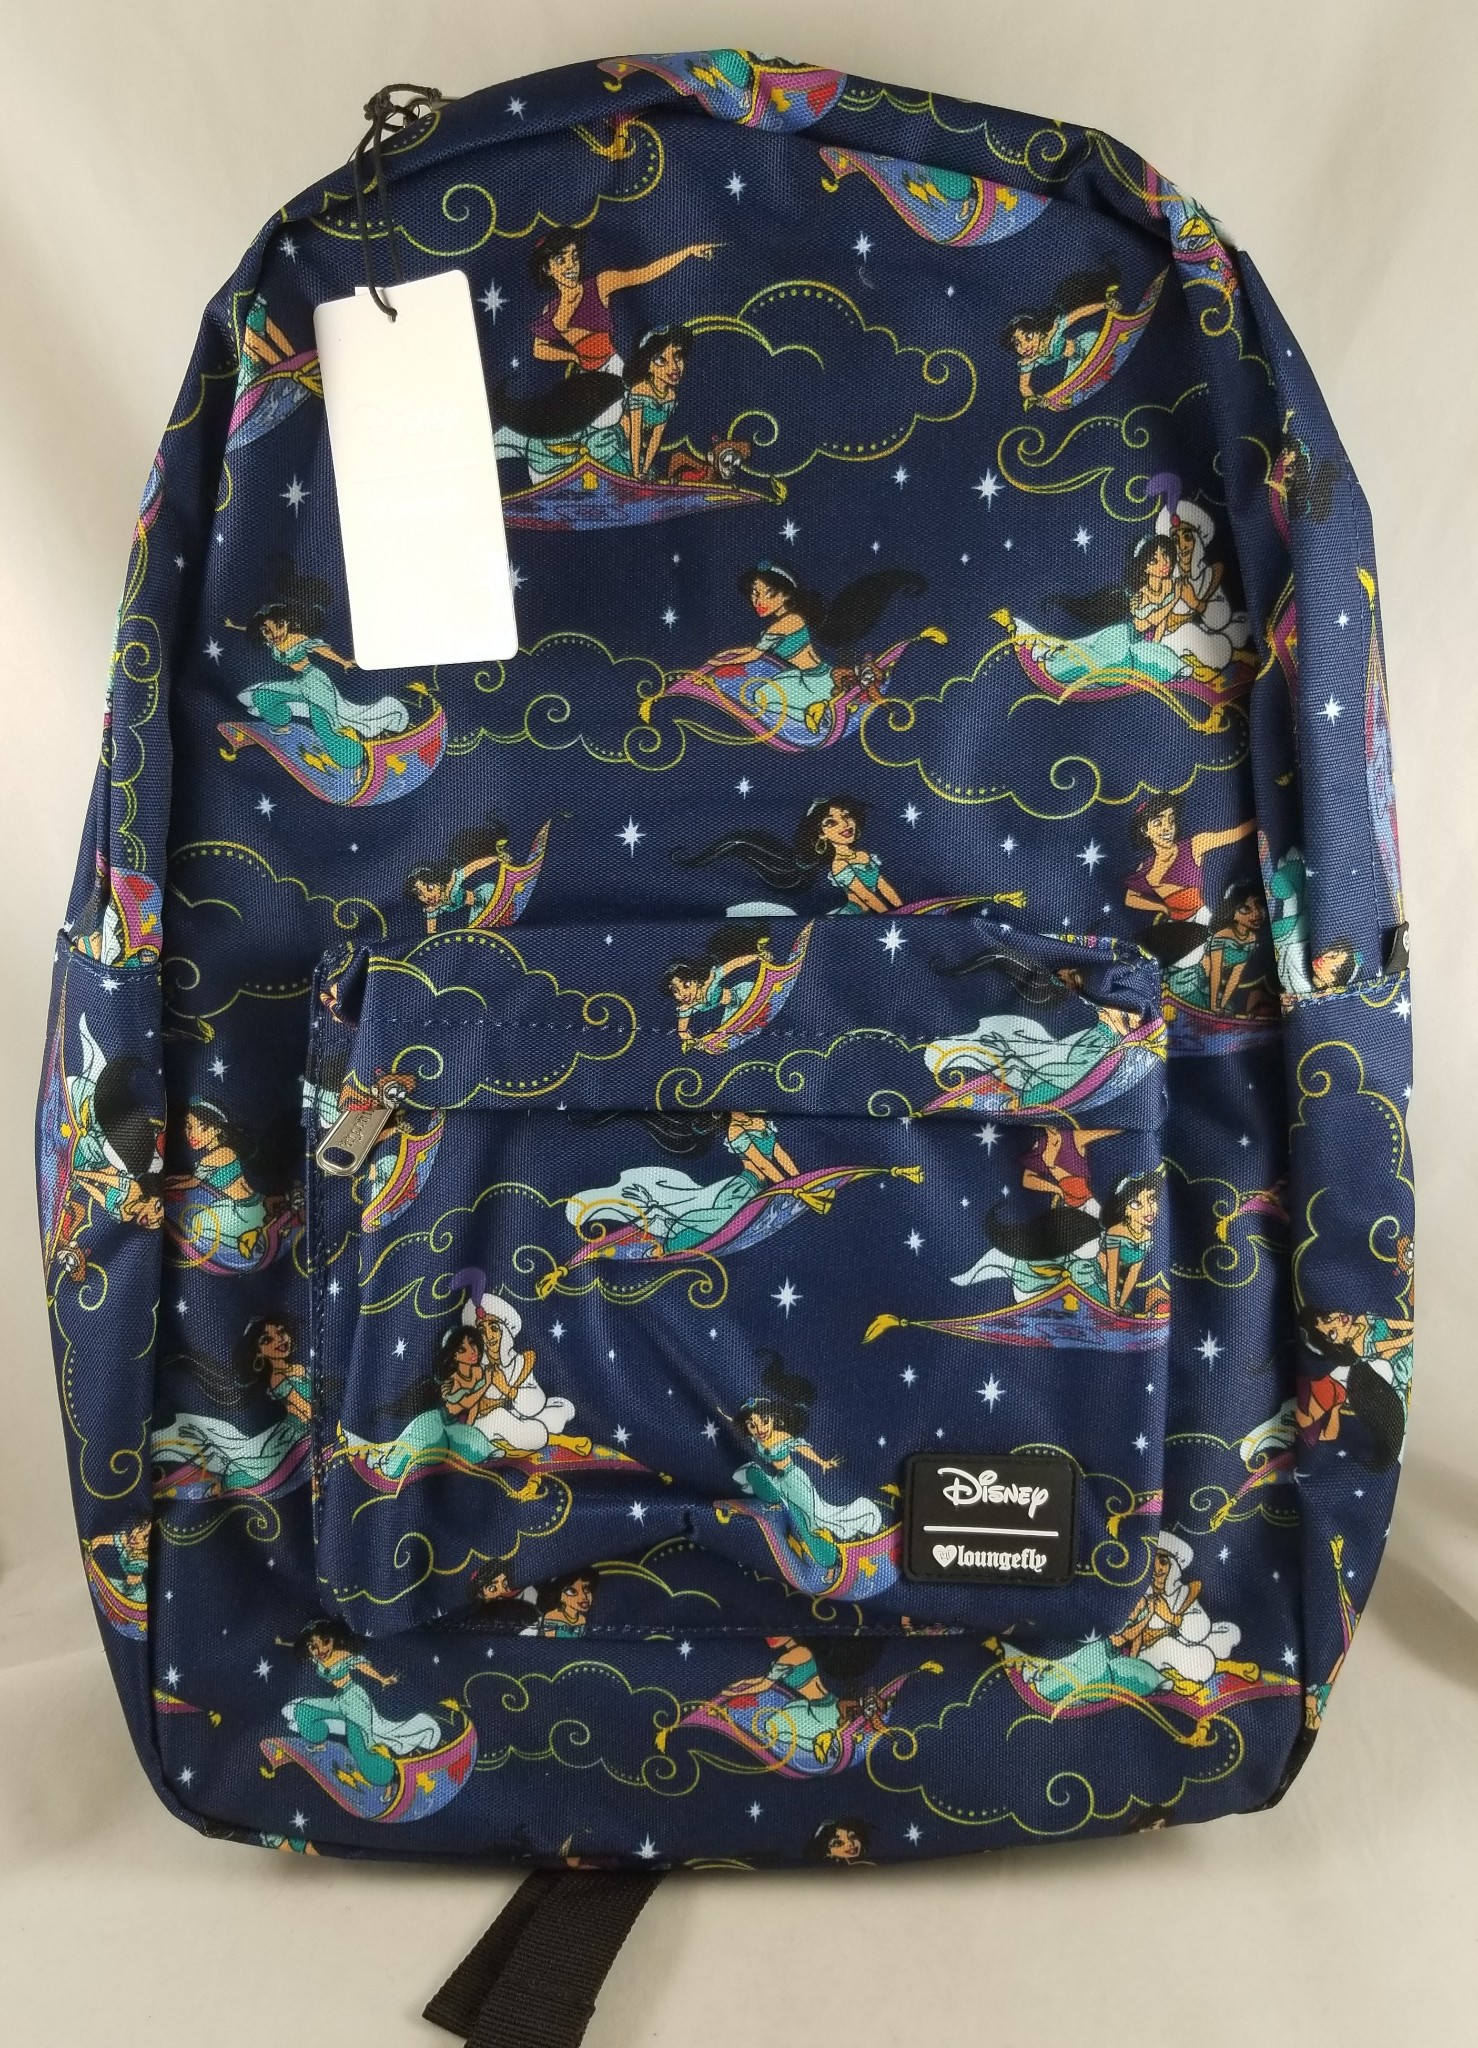 f6817e41f21 Details about Loungefly Disney Parks Aladdin Carpet Ride Print Backpack  Book   Cosmetic Bag